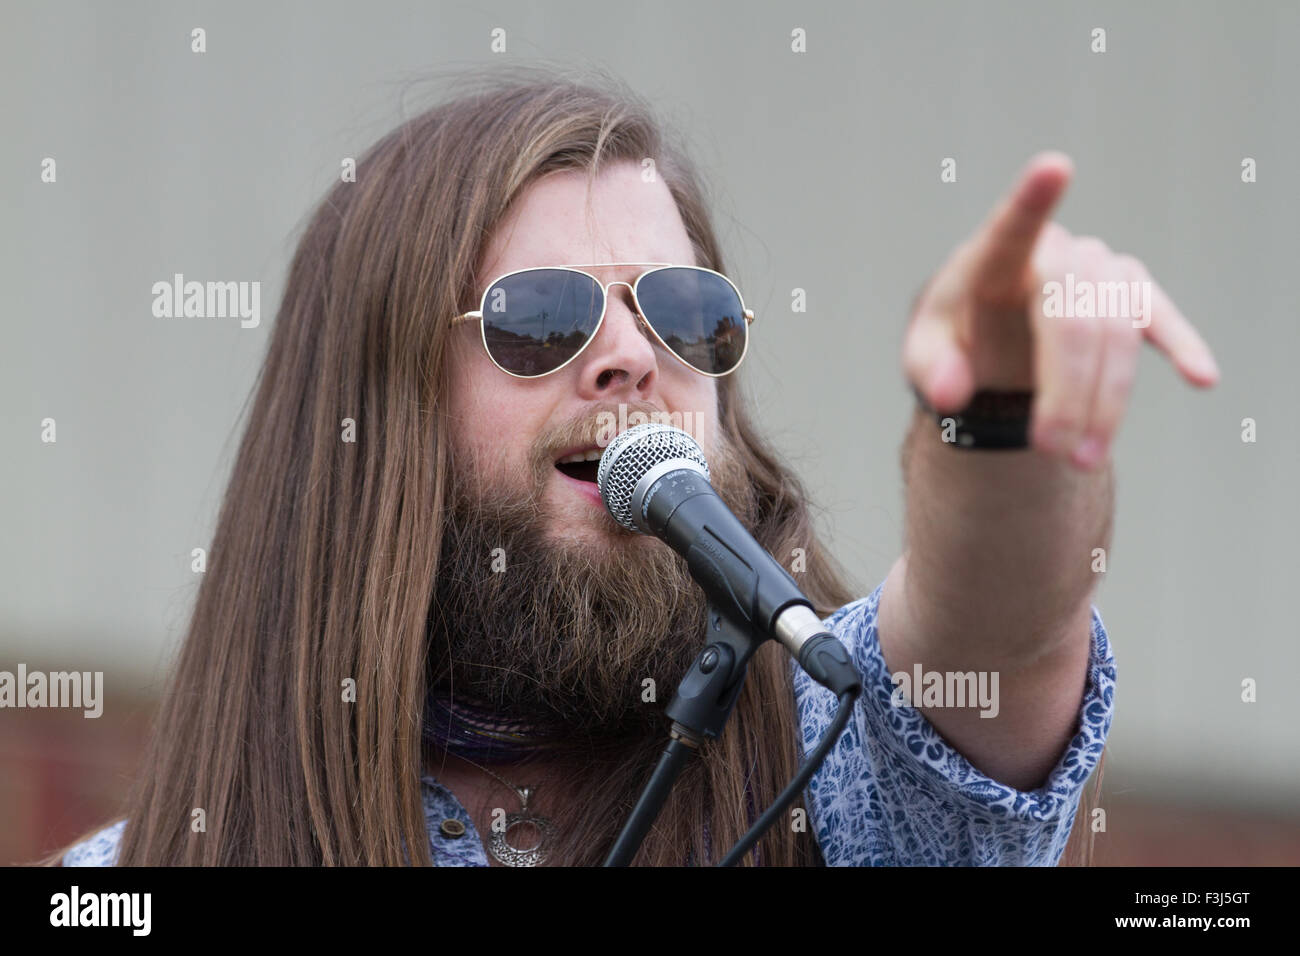 Adam Barron (The Voice UK 2013 finalist), lead singer with The Mick Ralphs Blues Band, at the 2015 Darlington R'n'B - Stock Image